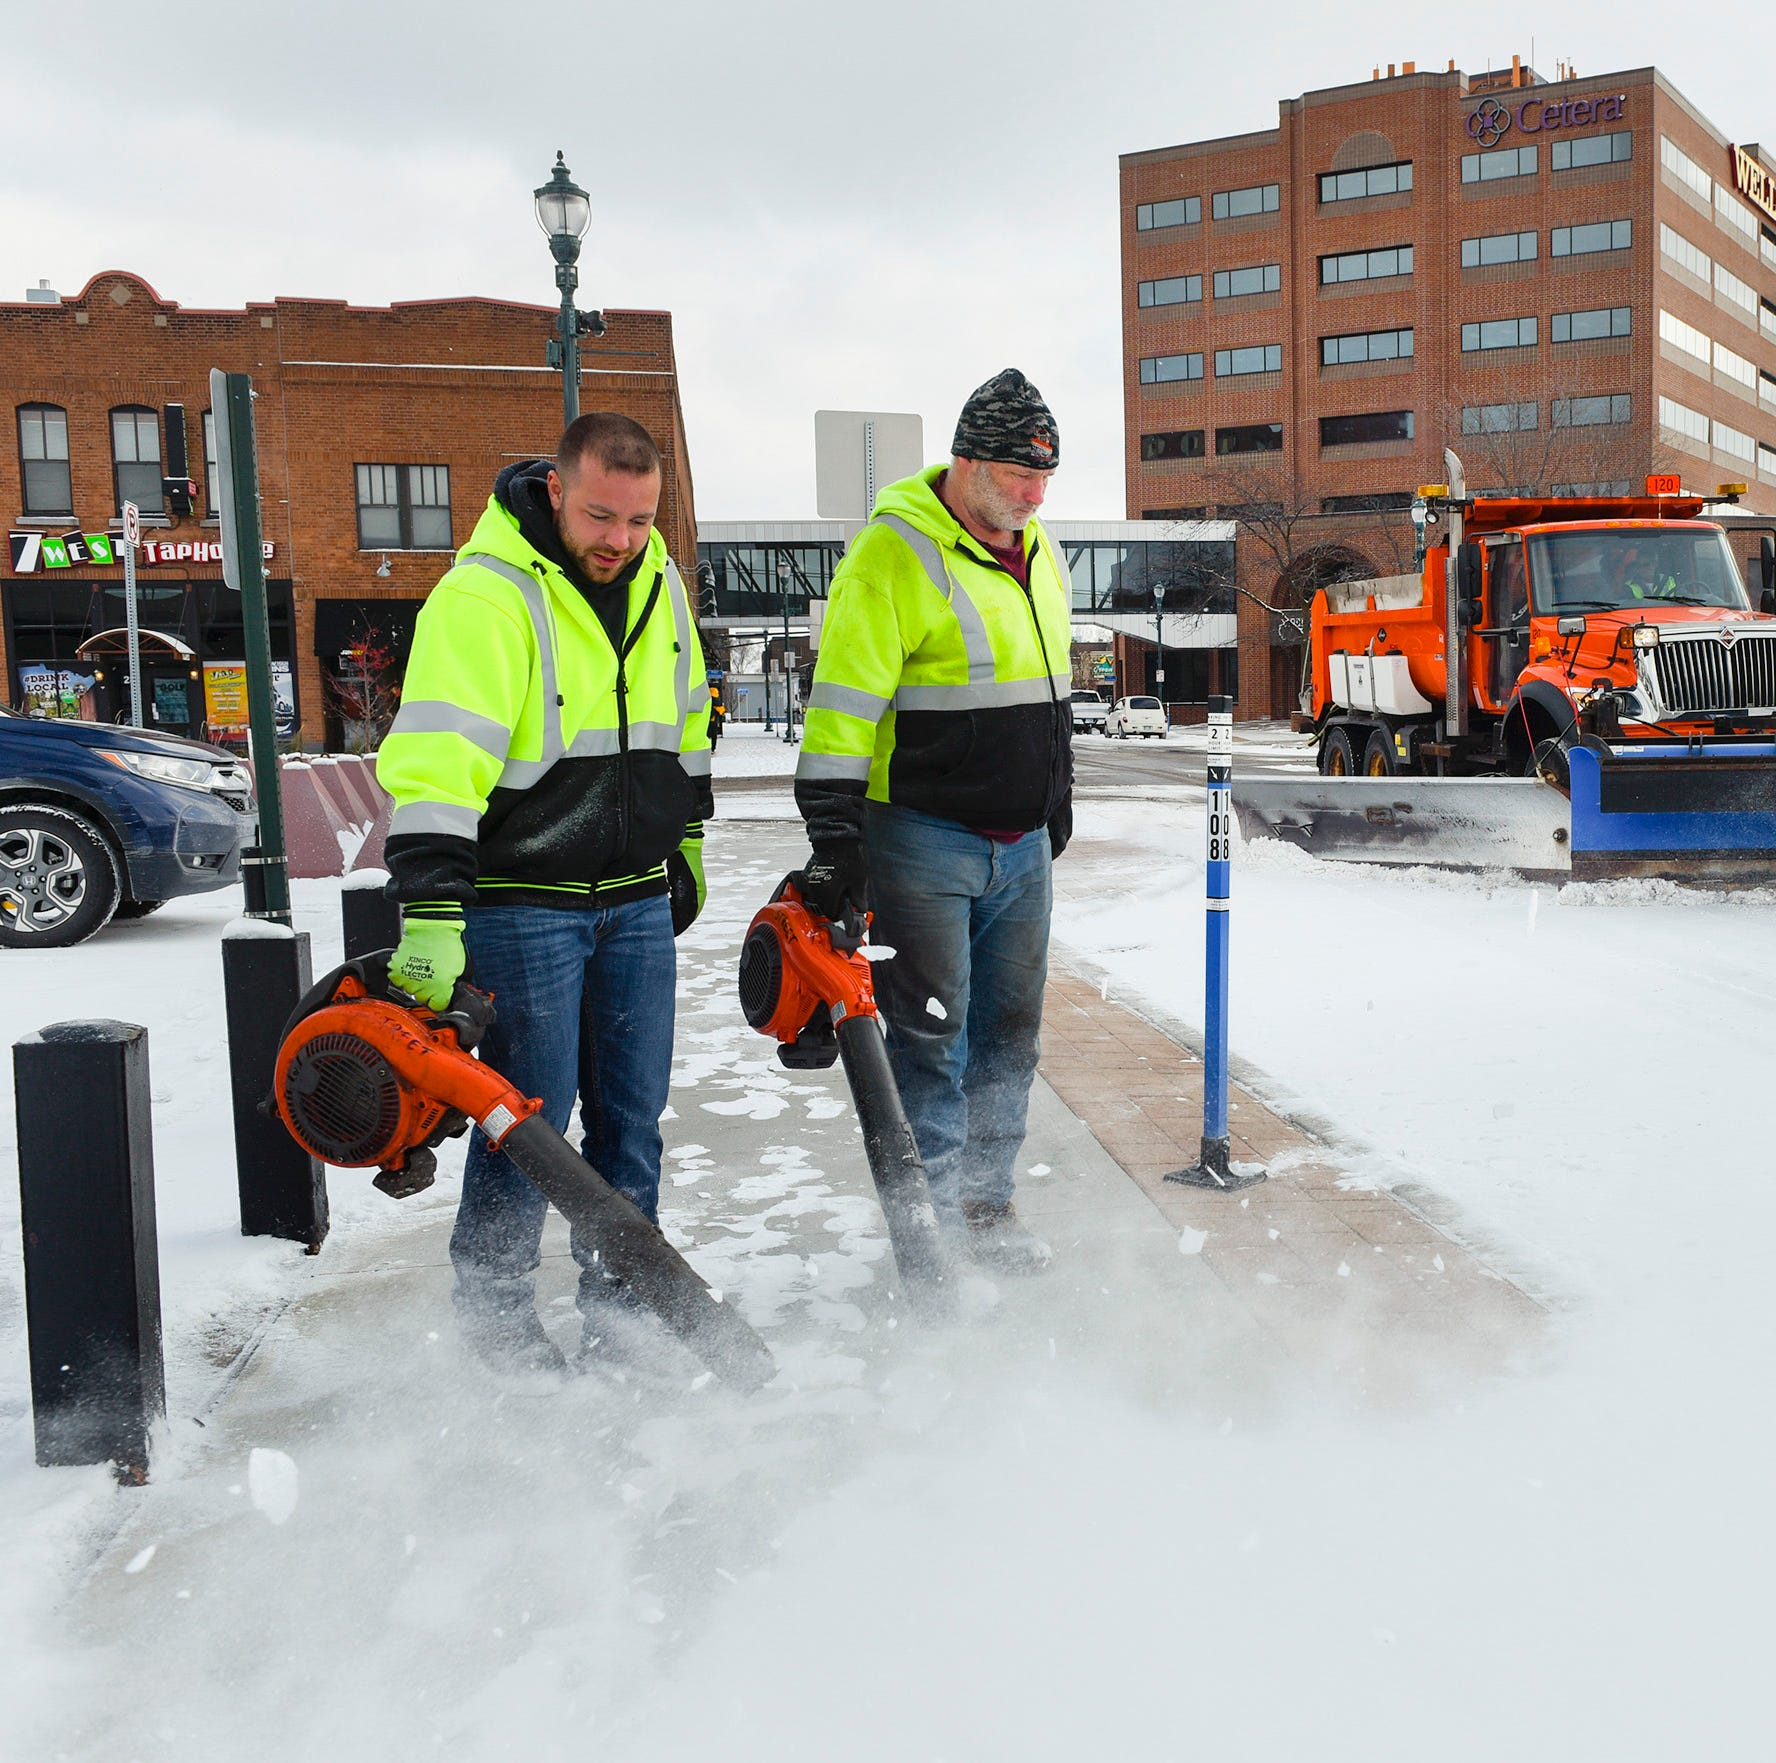 Who's responsible for that? St. Cloud 201 features representatives from city, school, county and more